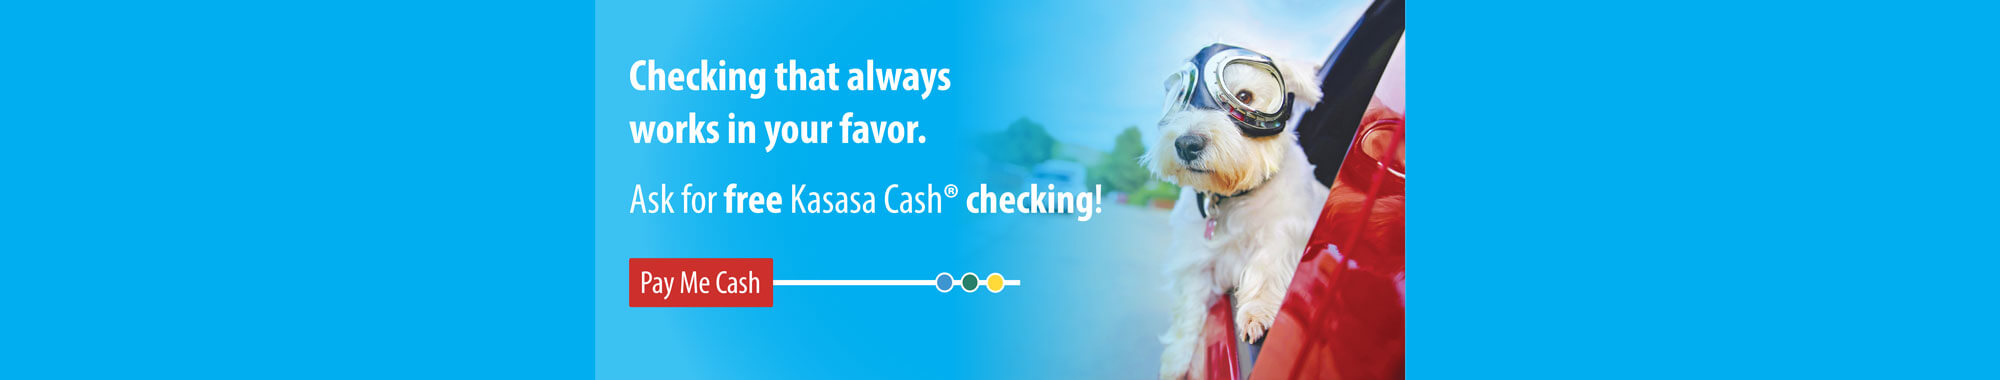 Ask for free Kasasa Cash checking!